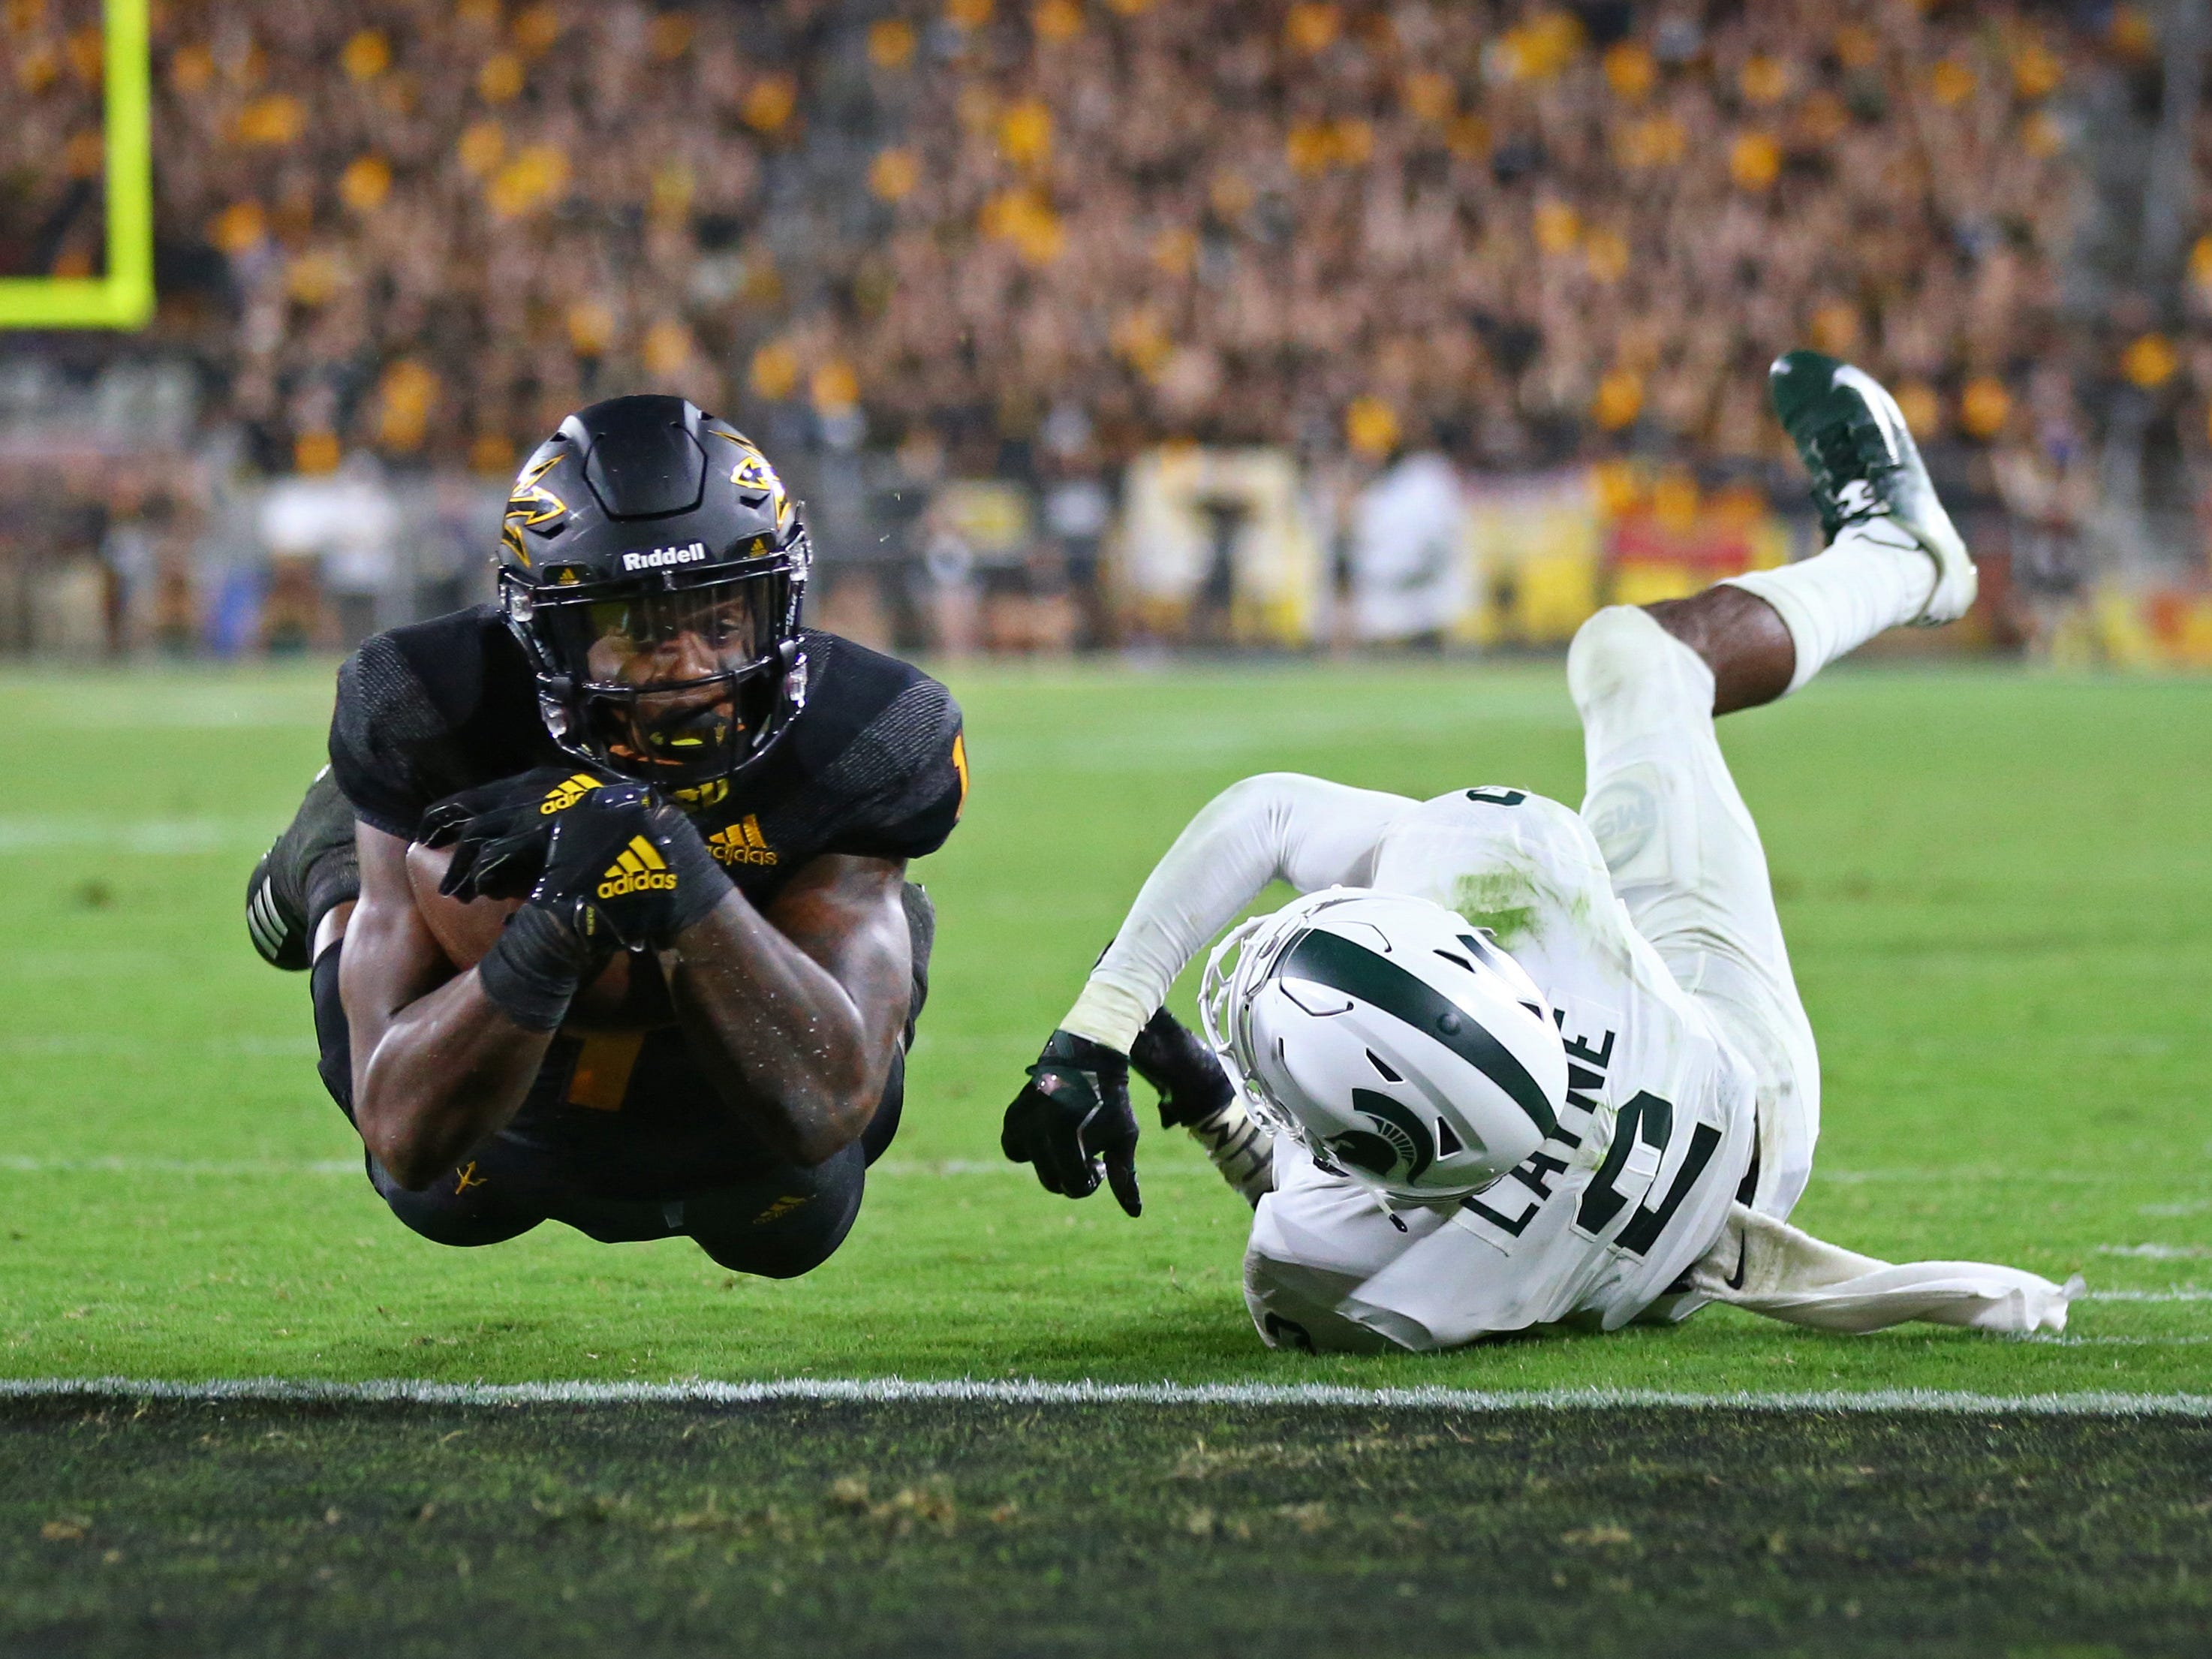 Arizona State Sun Devils wide receiver N'Keal Harry (1) dives into the end zone for a touchdown against Michigan State Spartans cornerback Justin Layne (2) in the fourth quarter at Sun Devil Stadium.